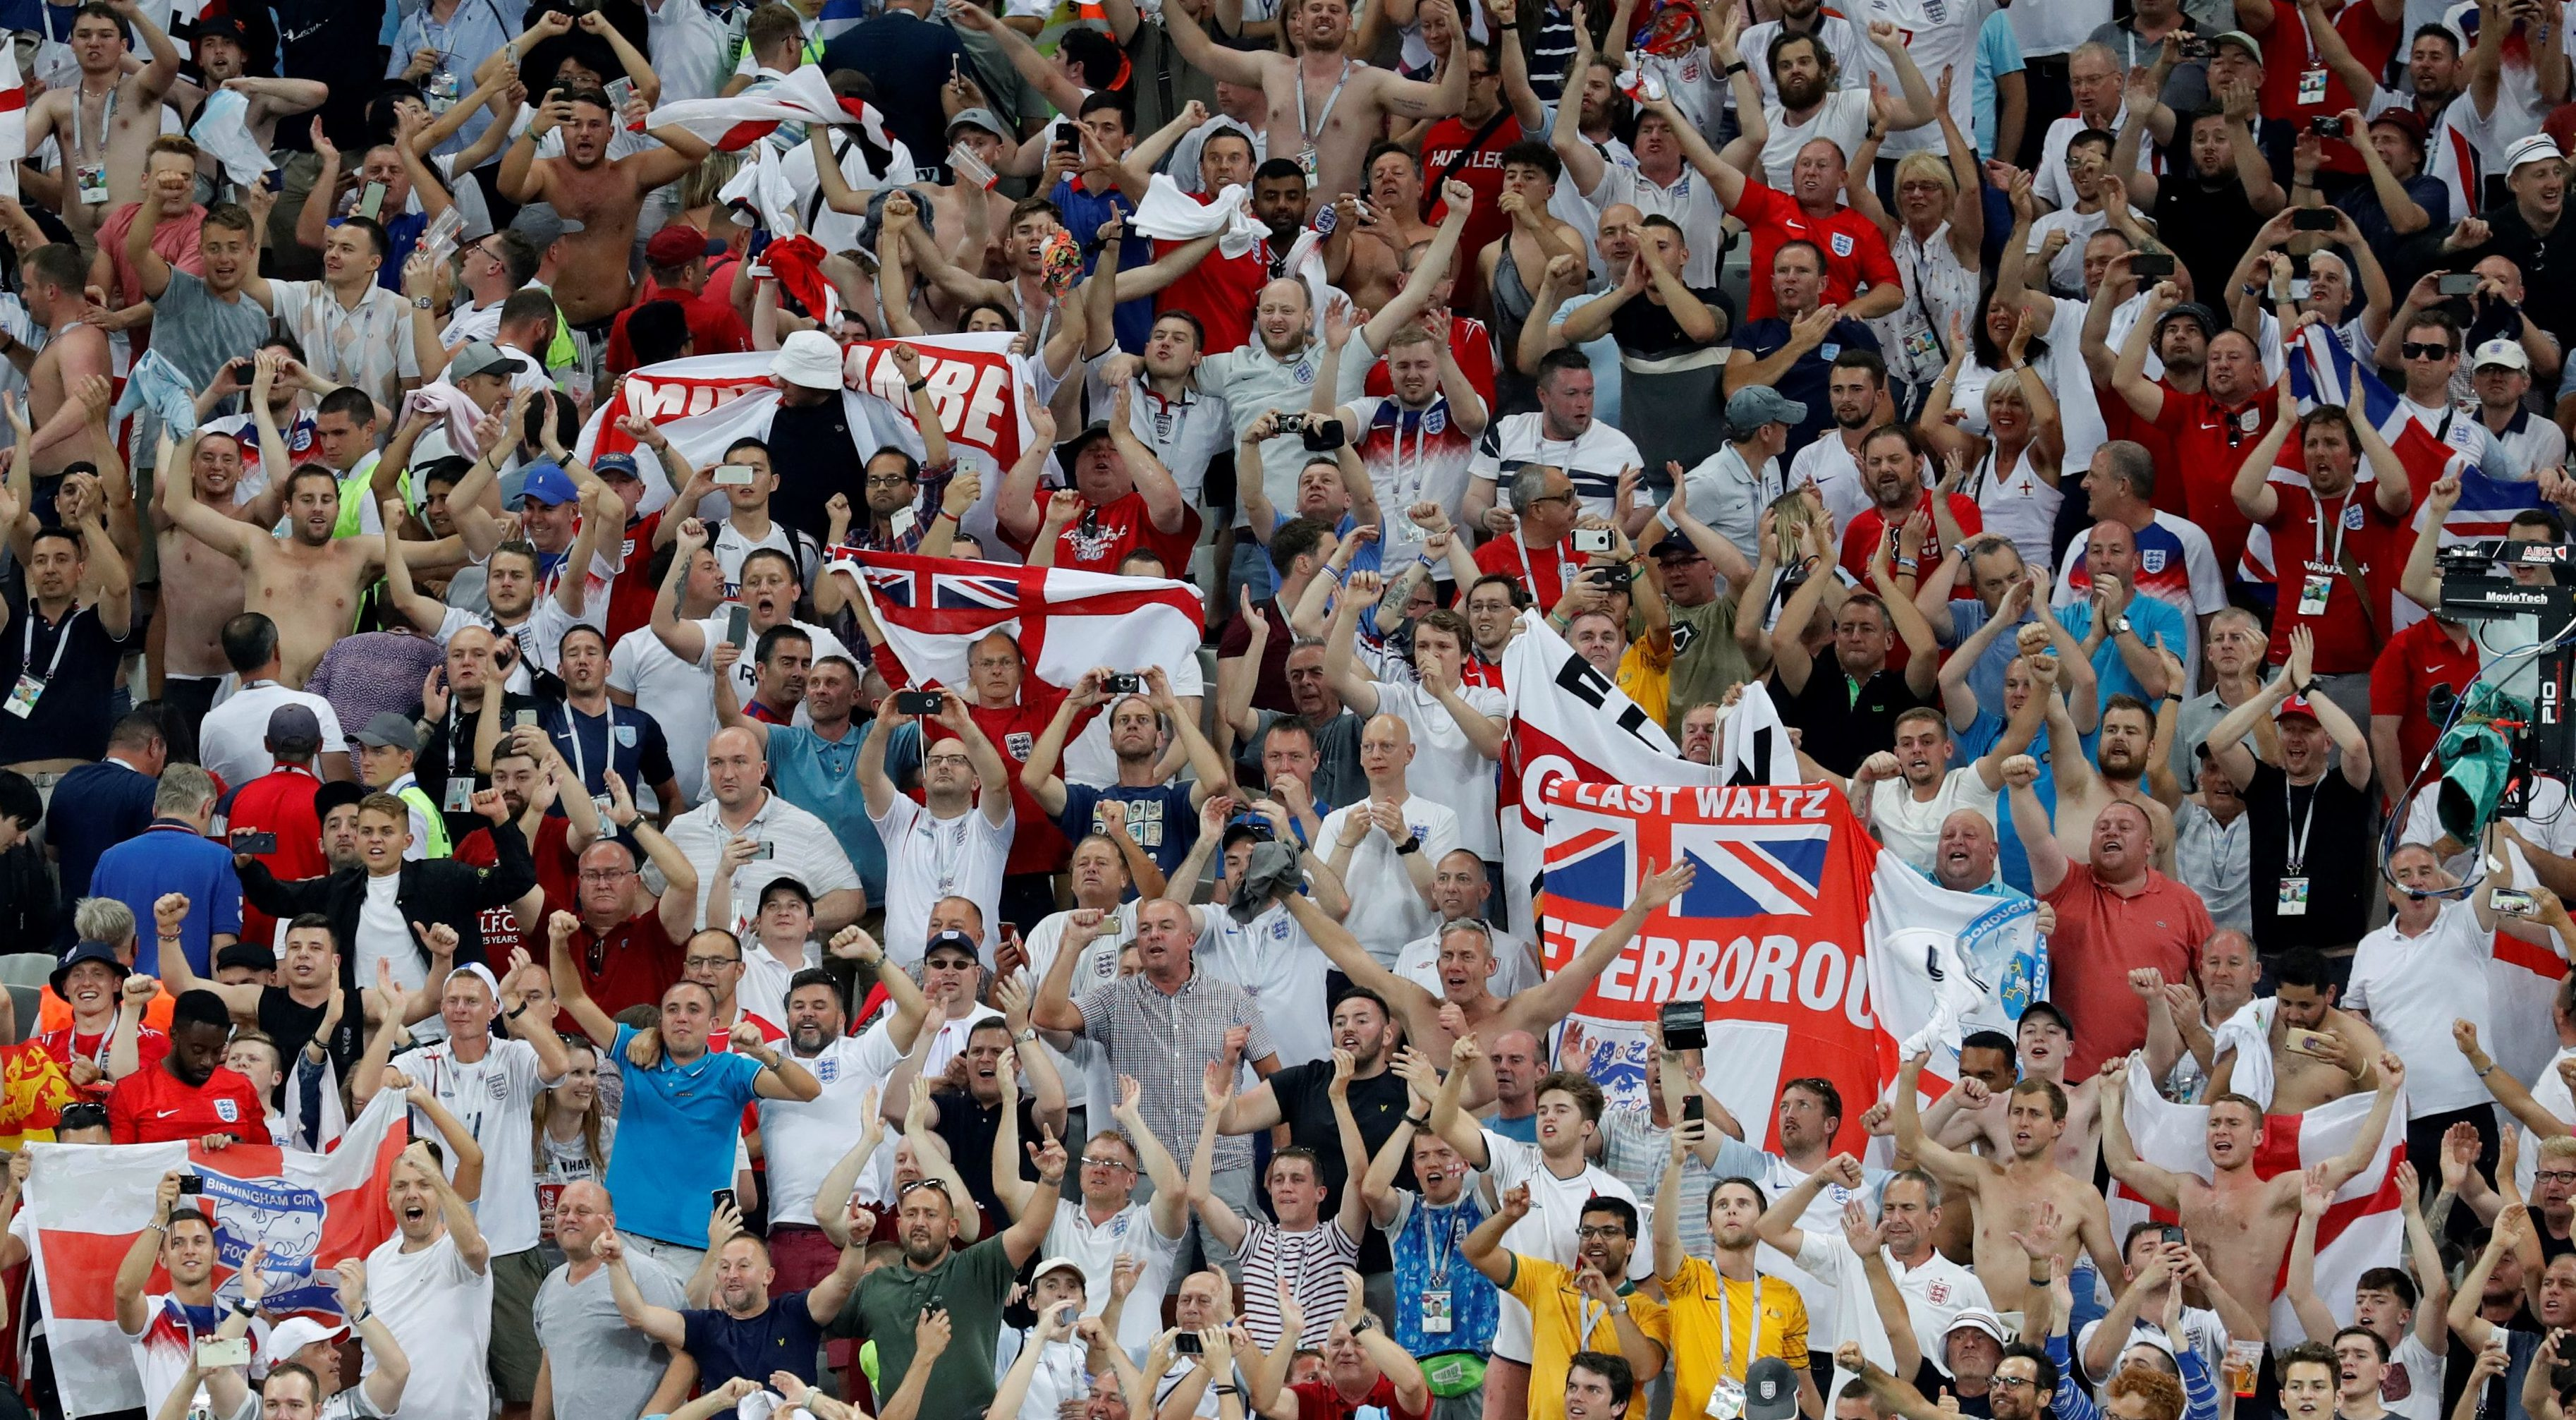 England fans celebrate victory after the match